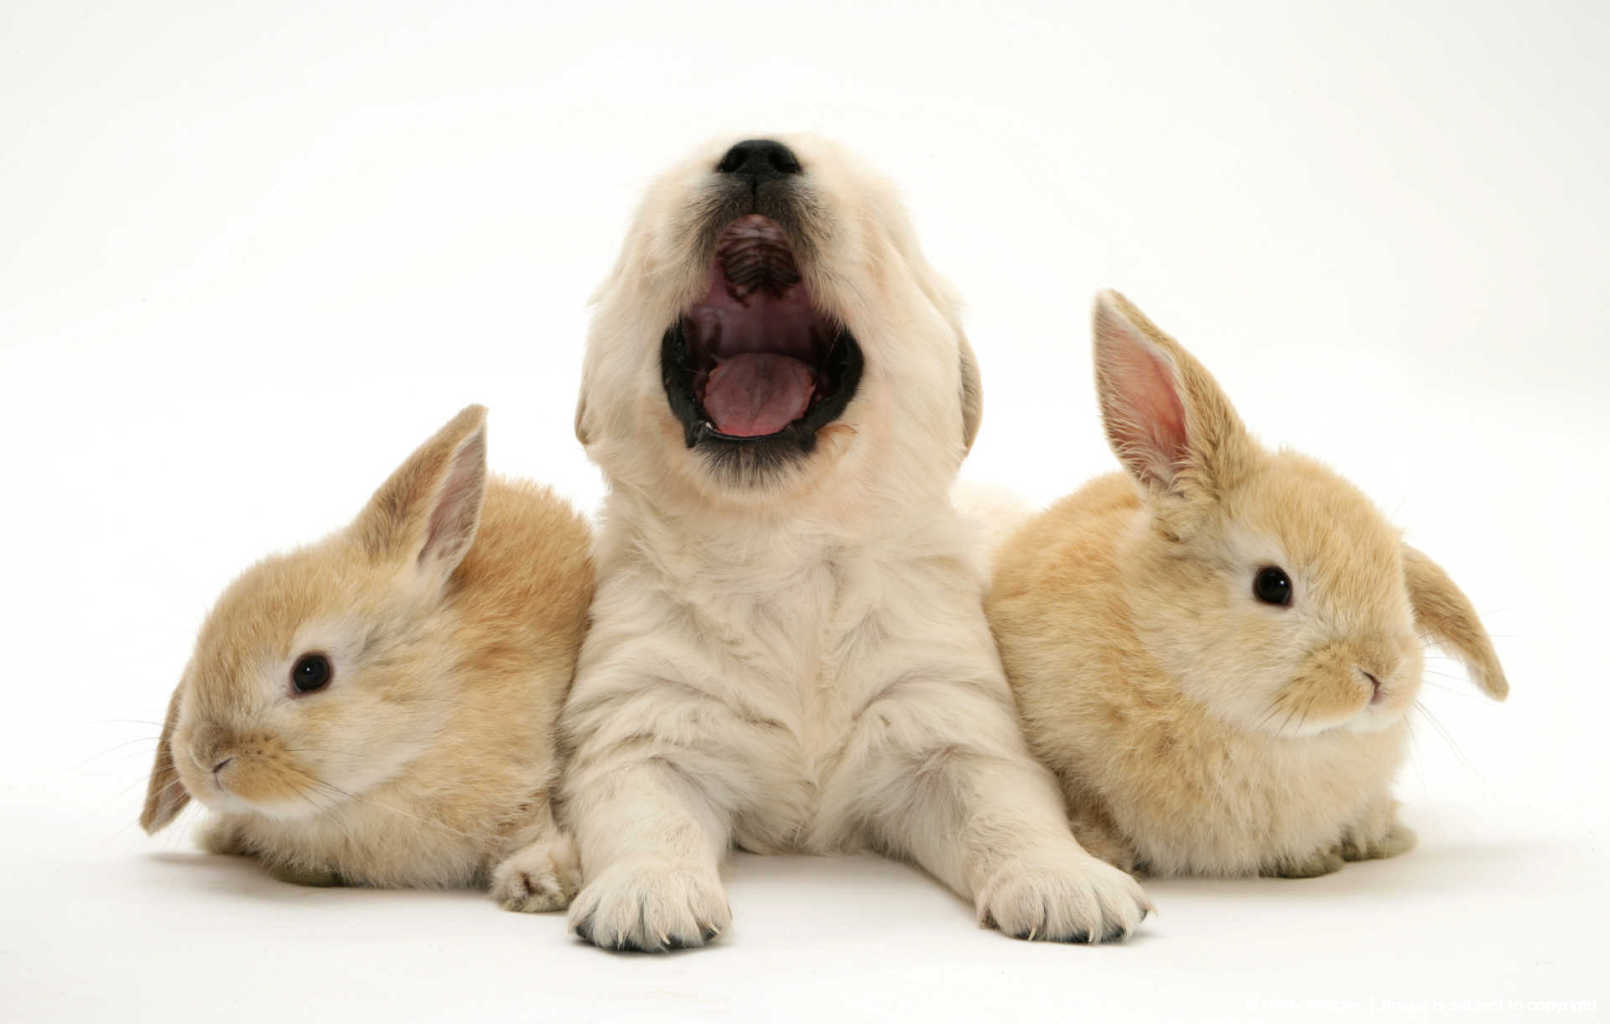 Golden Retriever pup yawning and two young Sandy Lop rabbits.